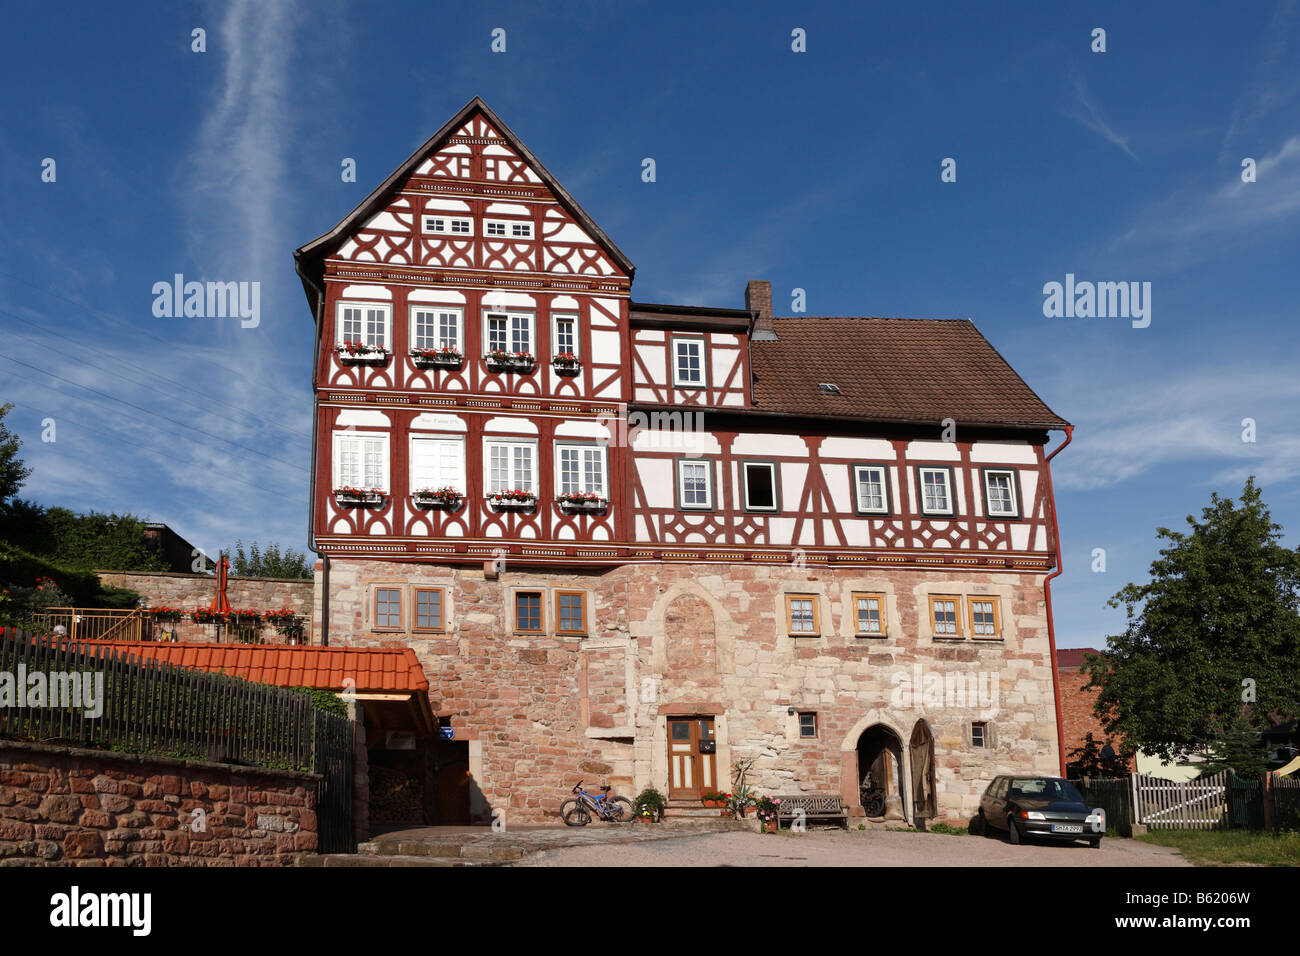 Maienhof, half-timbered building in Wasungen, Rhoen, Thuringia, Germany, Europe - Stock Image